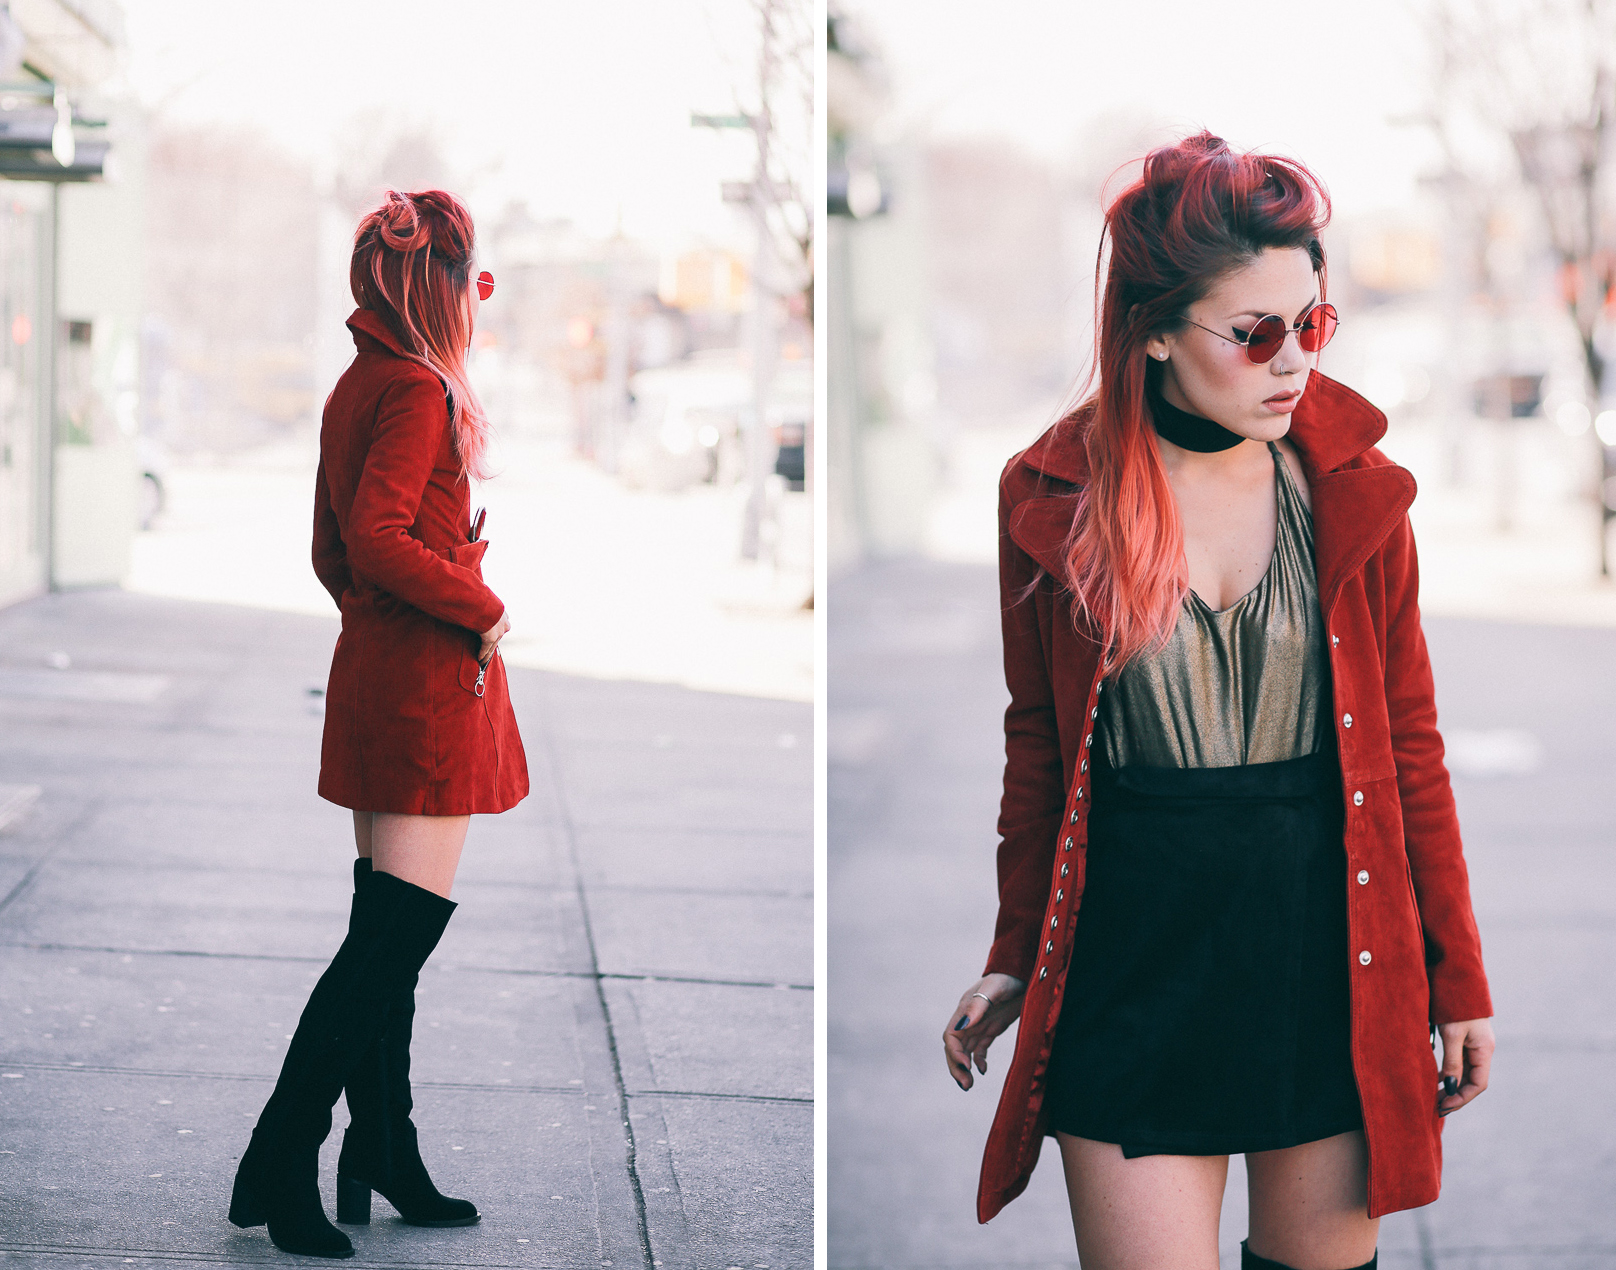 Le Happy wearing Nasty Gal retro suede coat and metallic bodysuit